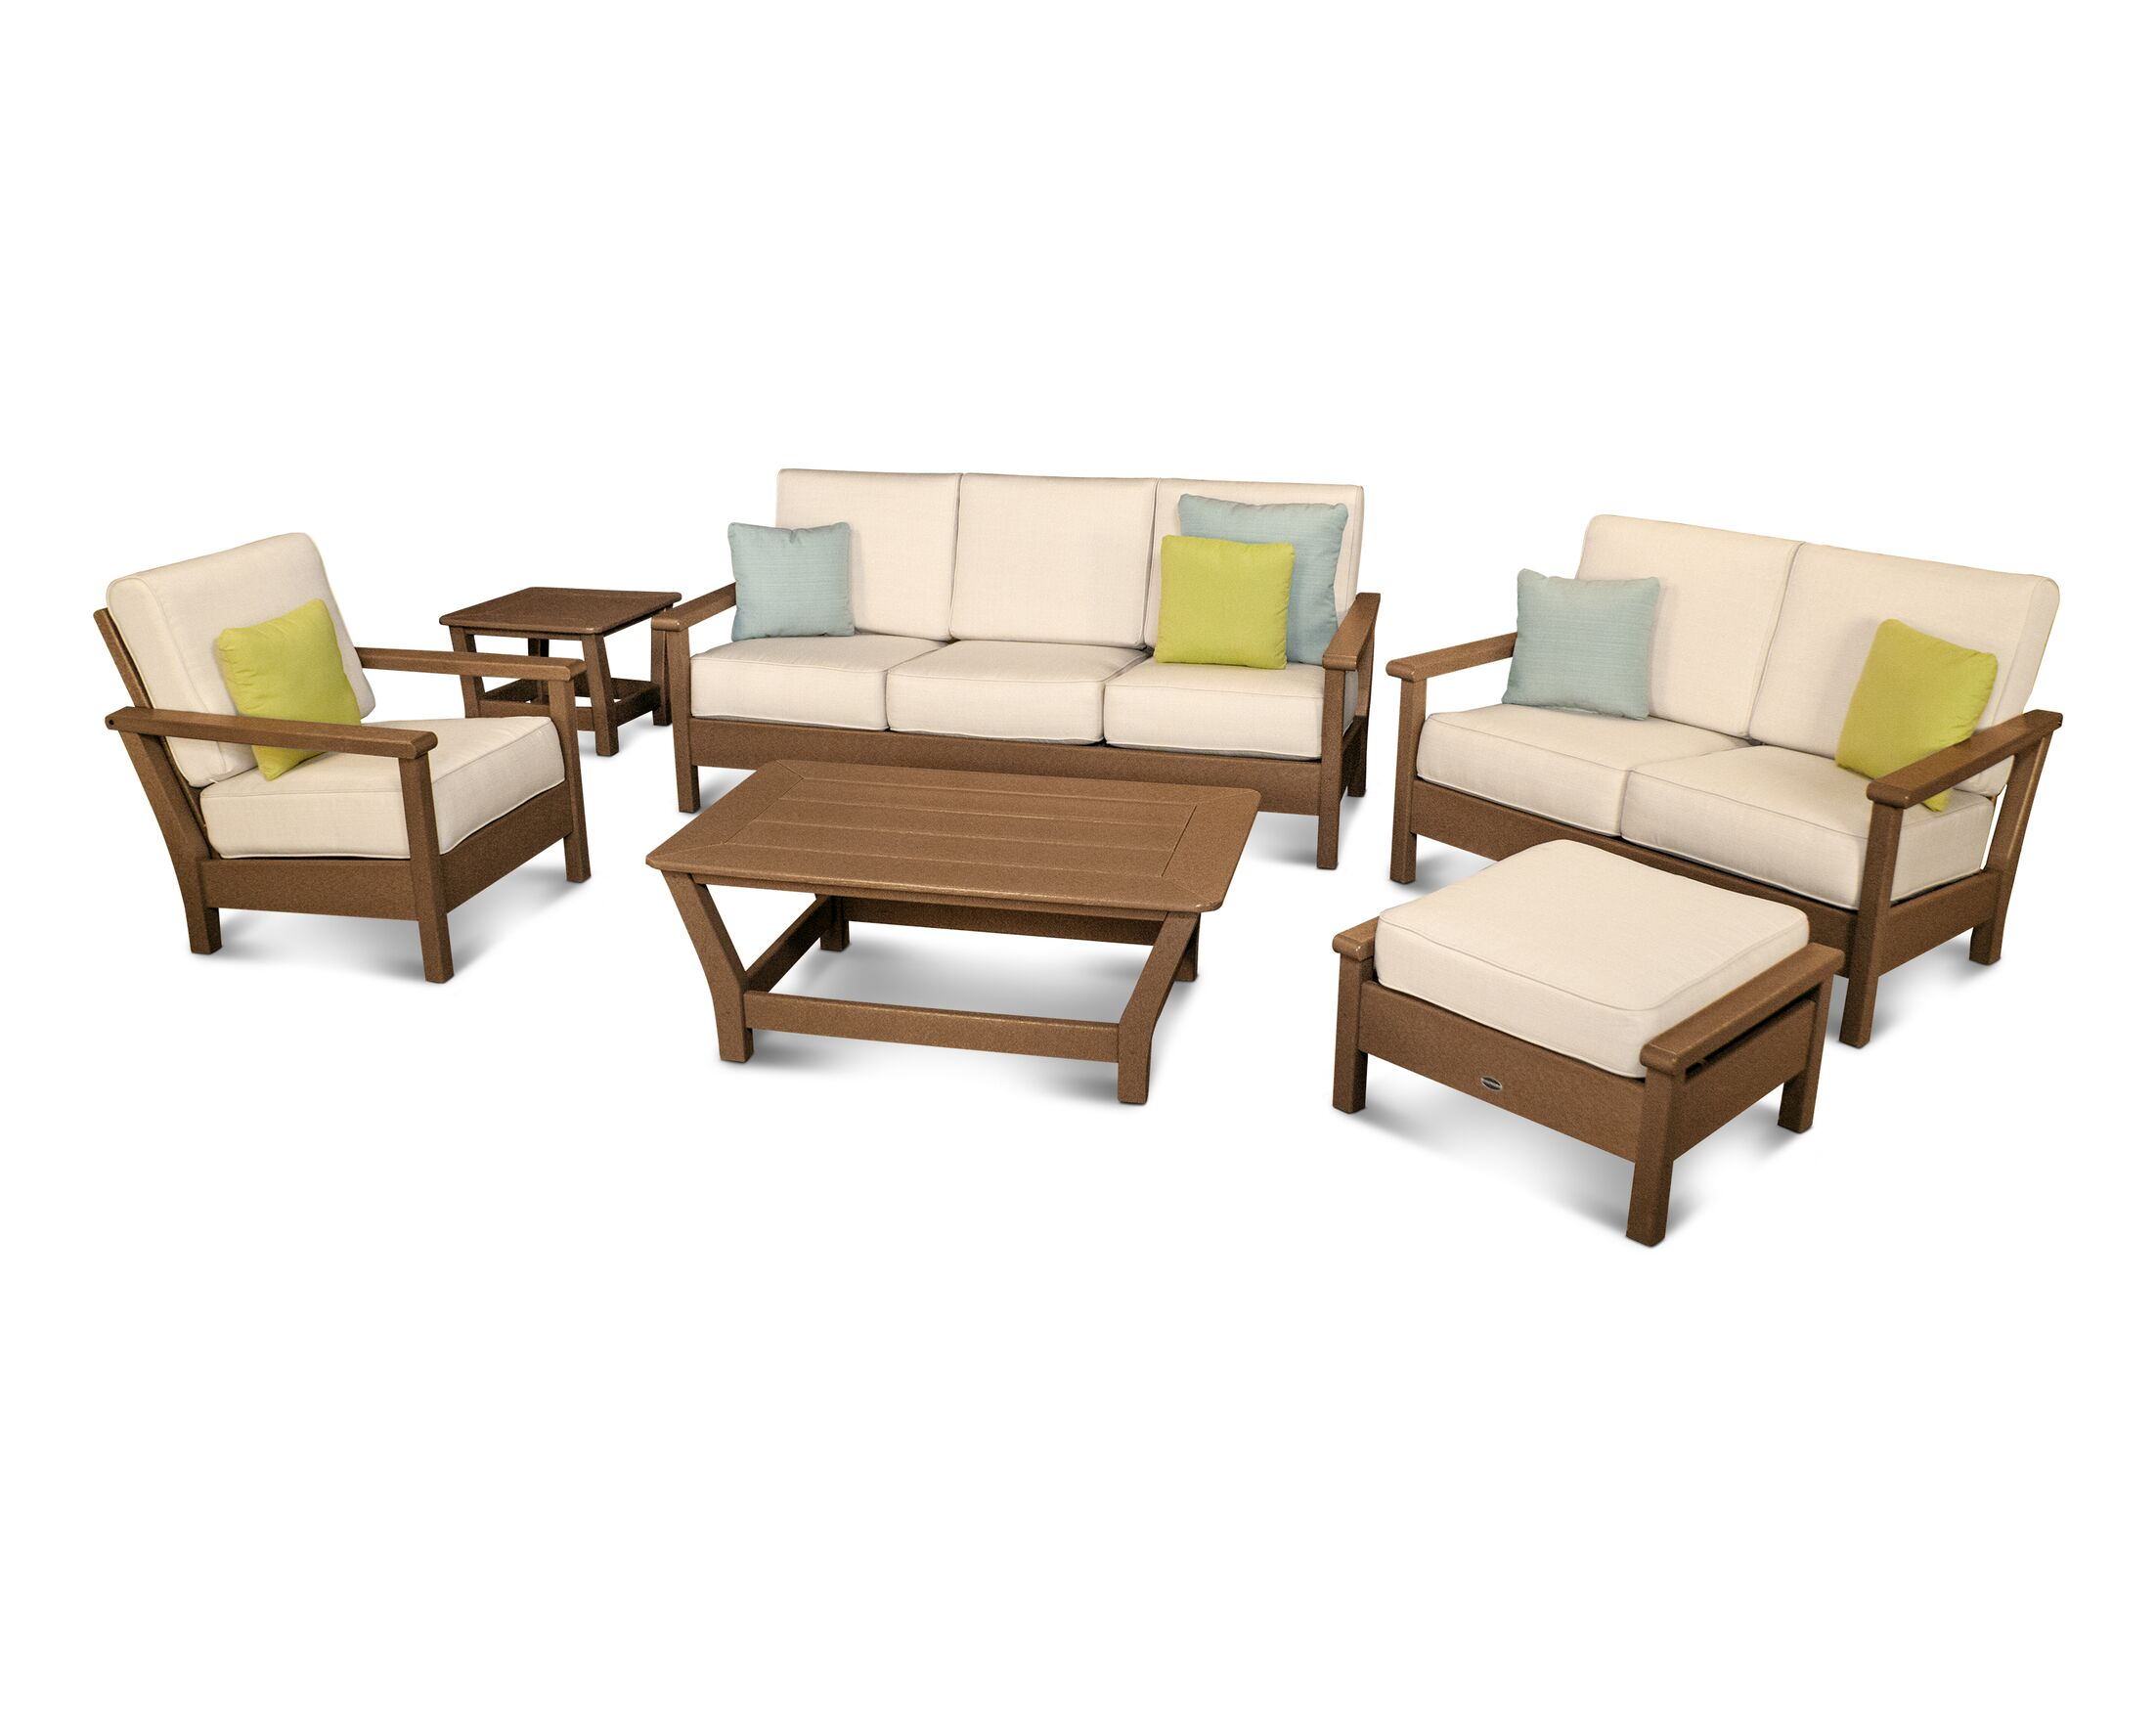 Harbour 6 Piece Sunbrella Conversation Set with Cushions Color: Teak / Antique Beige